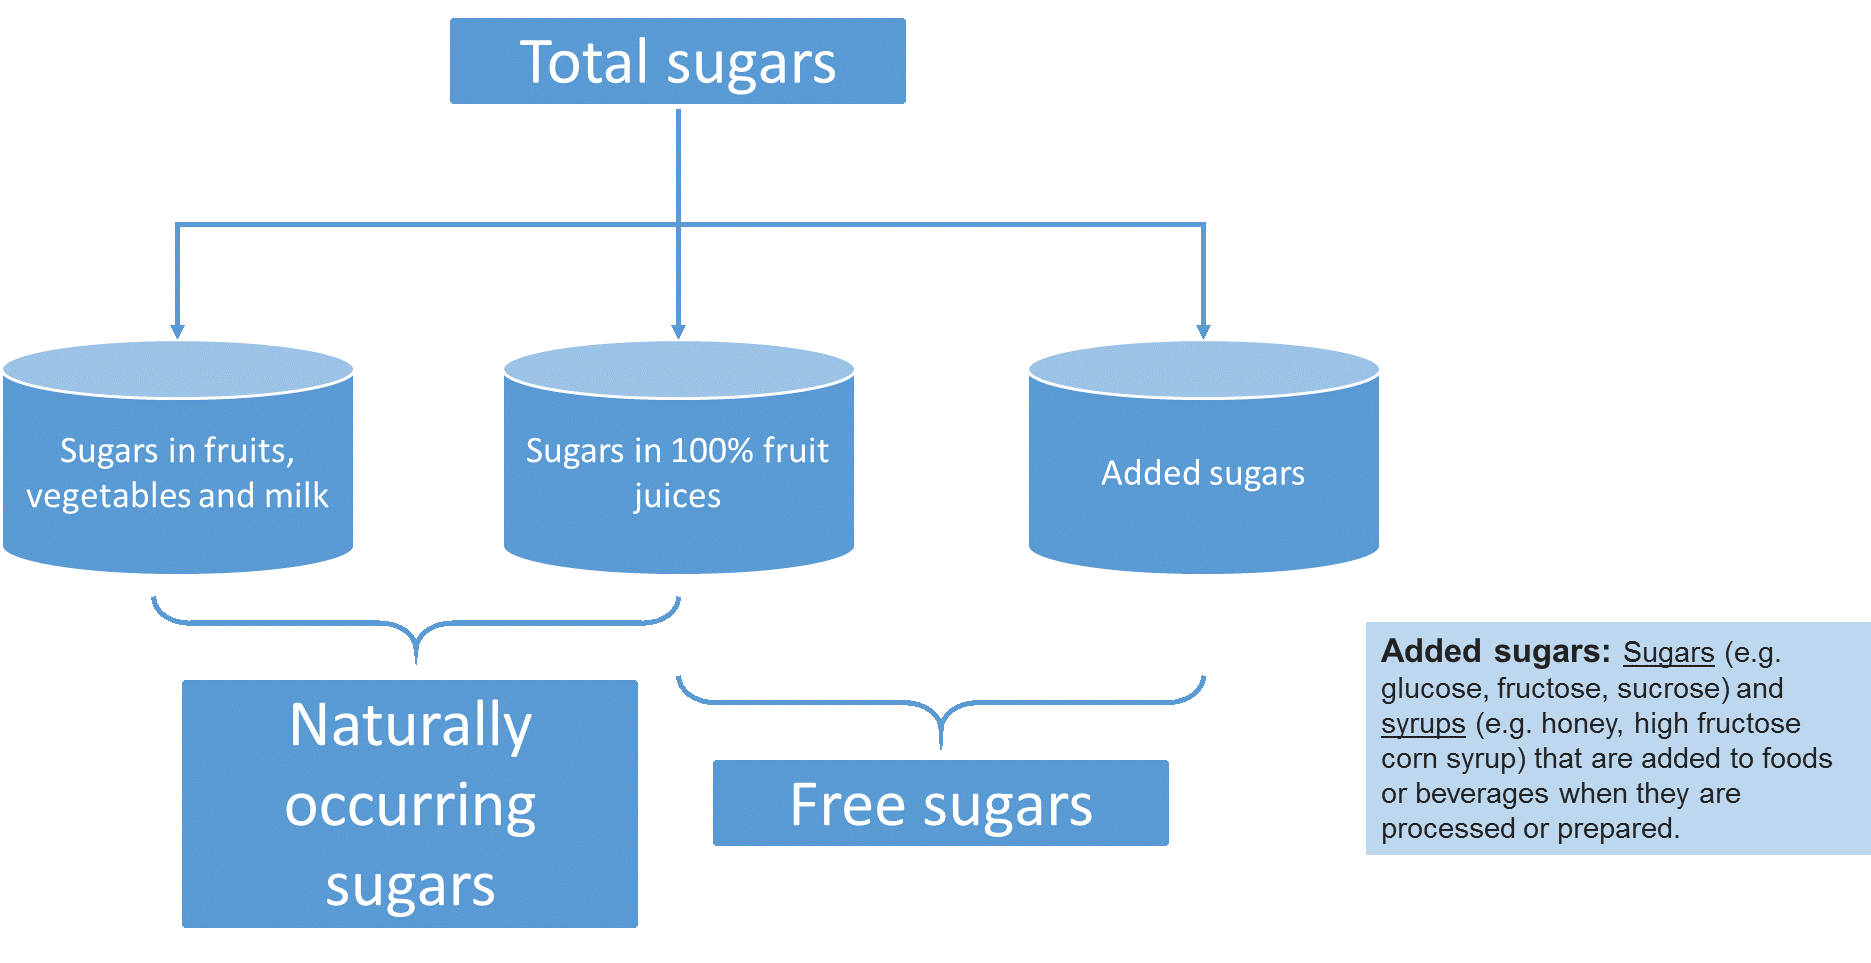 Total sugars includes naturally occurring sugars, added sugars; free sugars includes added sugars and sugars in 100%25 fruit juice